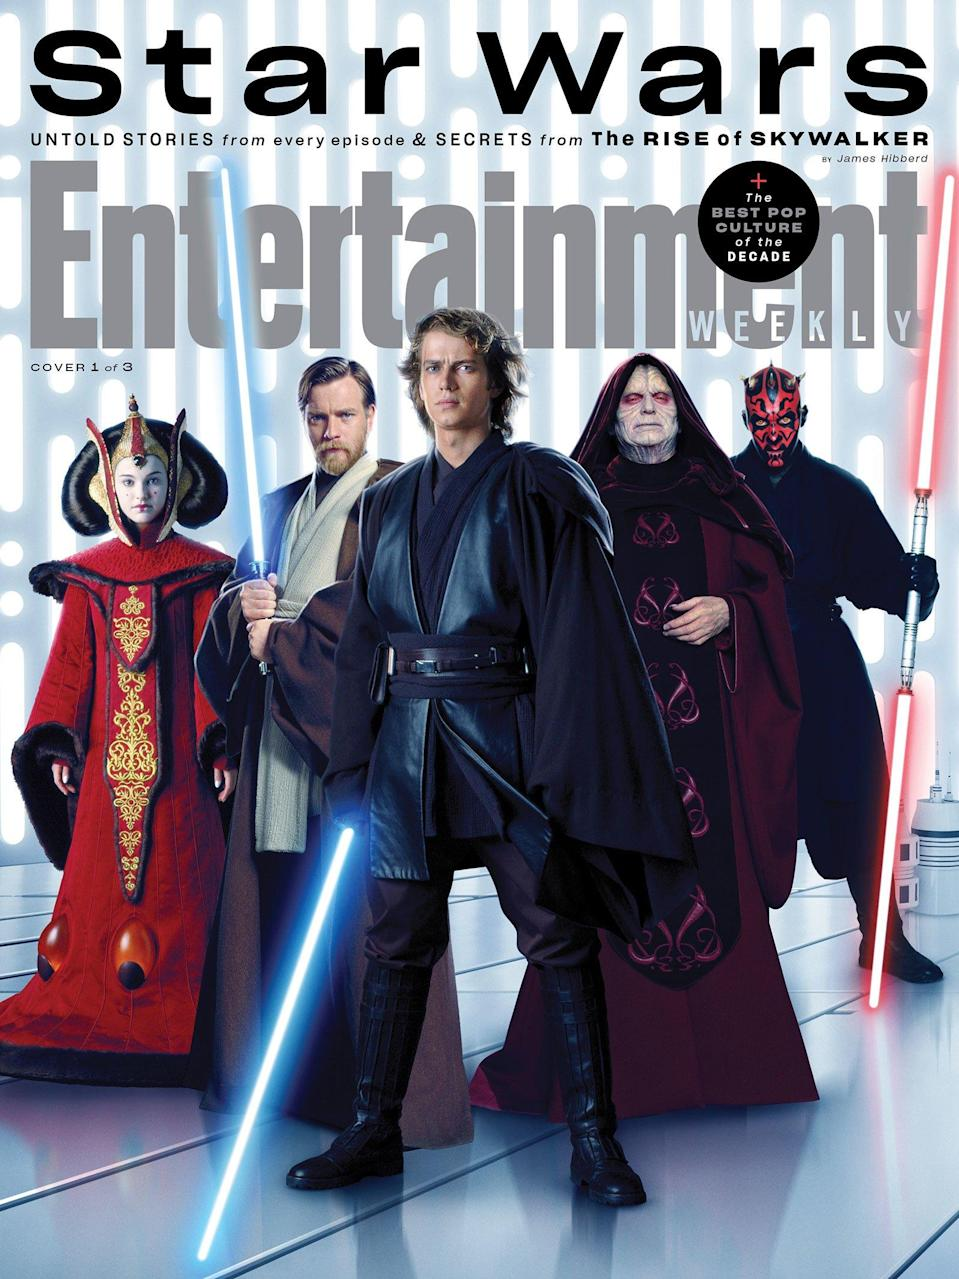 """To commemorate the franchise's epic conclusion, we released <a href=""""https://ew.com/movies/2019/11/19/star-wars-the-rise-of-skywalker/"""" rel=""""nofollow noopener"""" target=""""_blank"""" data-ylk=""""slk:three special Star Wars covers"""" class=""""link rapid-noclick-resp"""">three special <em>Star Wars</em> covers</a> in December."""